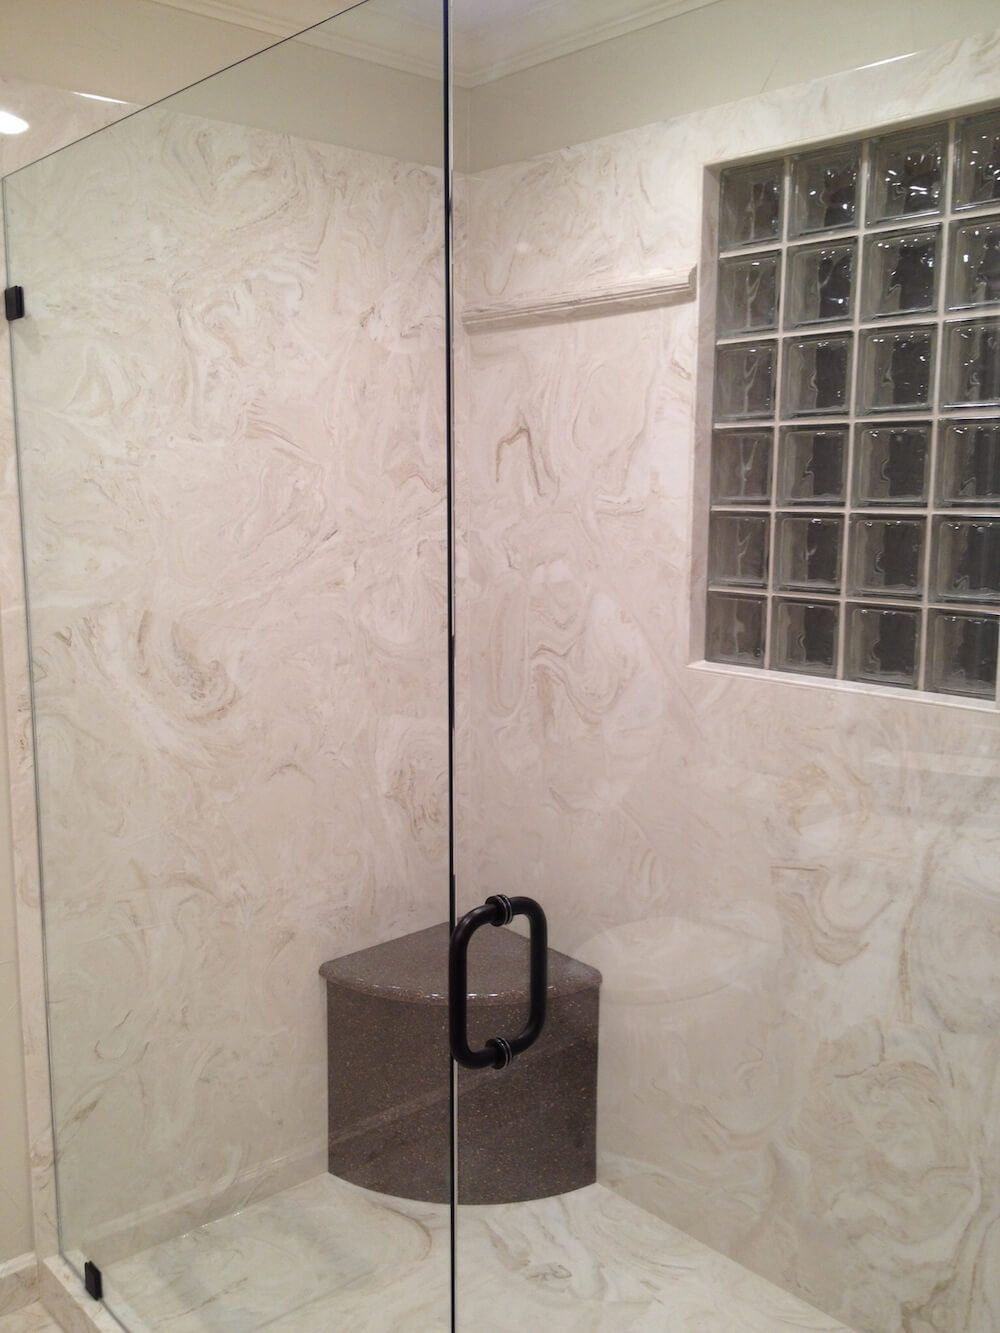 2019 Cultured Marble Shower Walls Cost Marble Shower Price Marble Shower Walls Cultured Marble Shower Walls Cultured Marble Shower